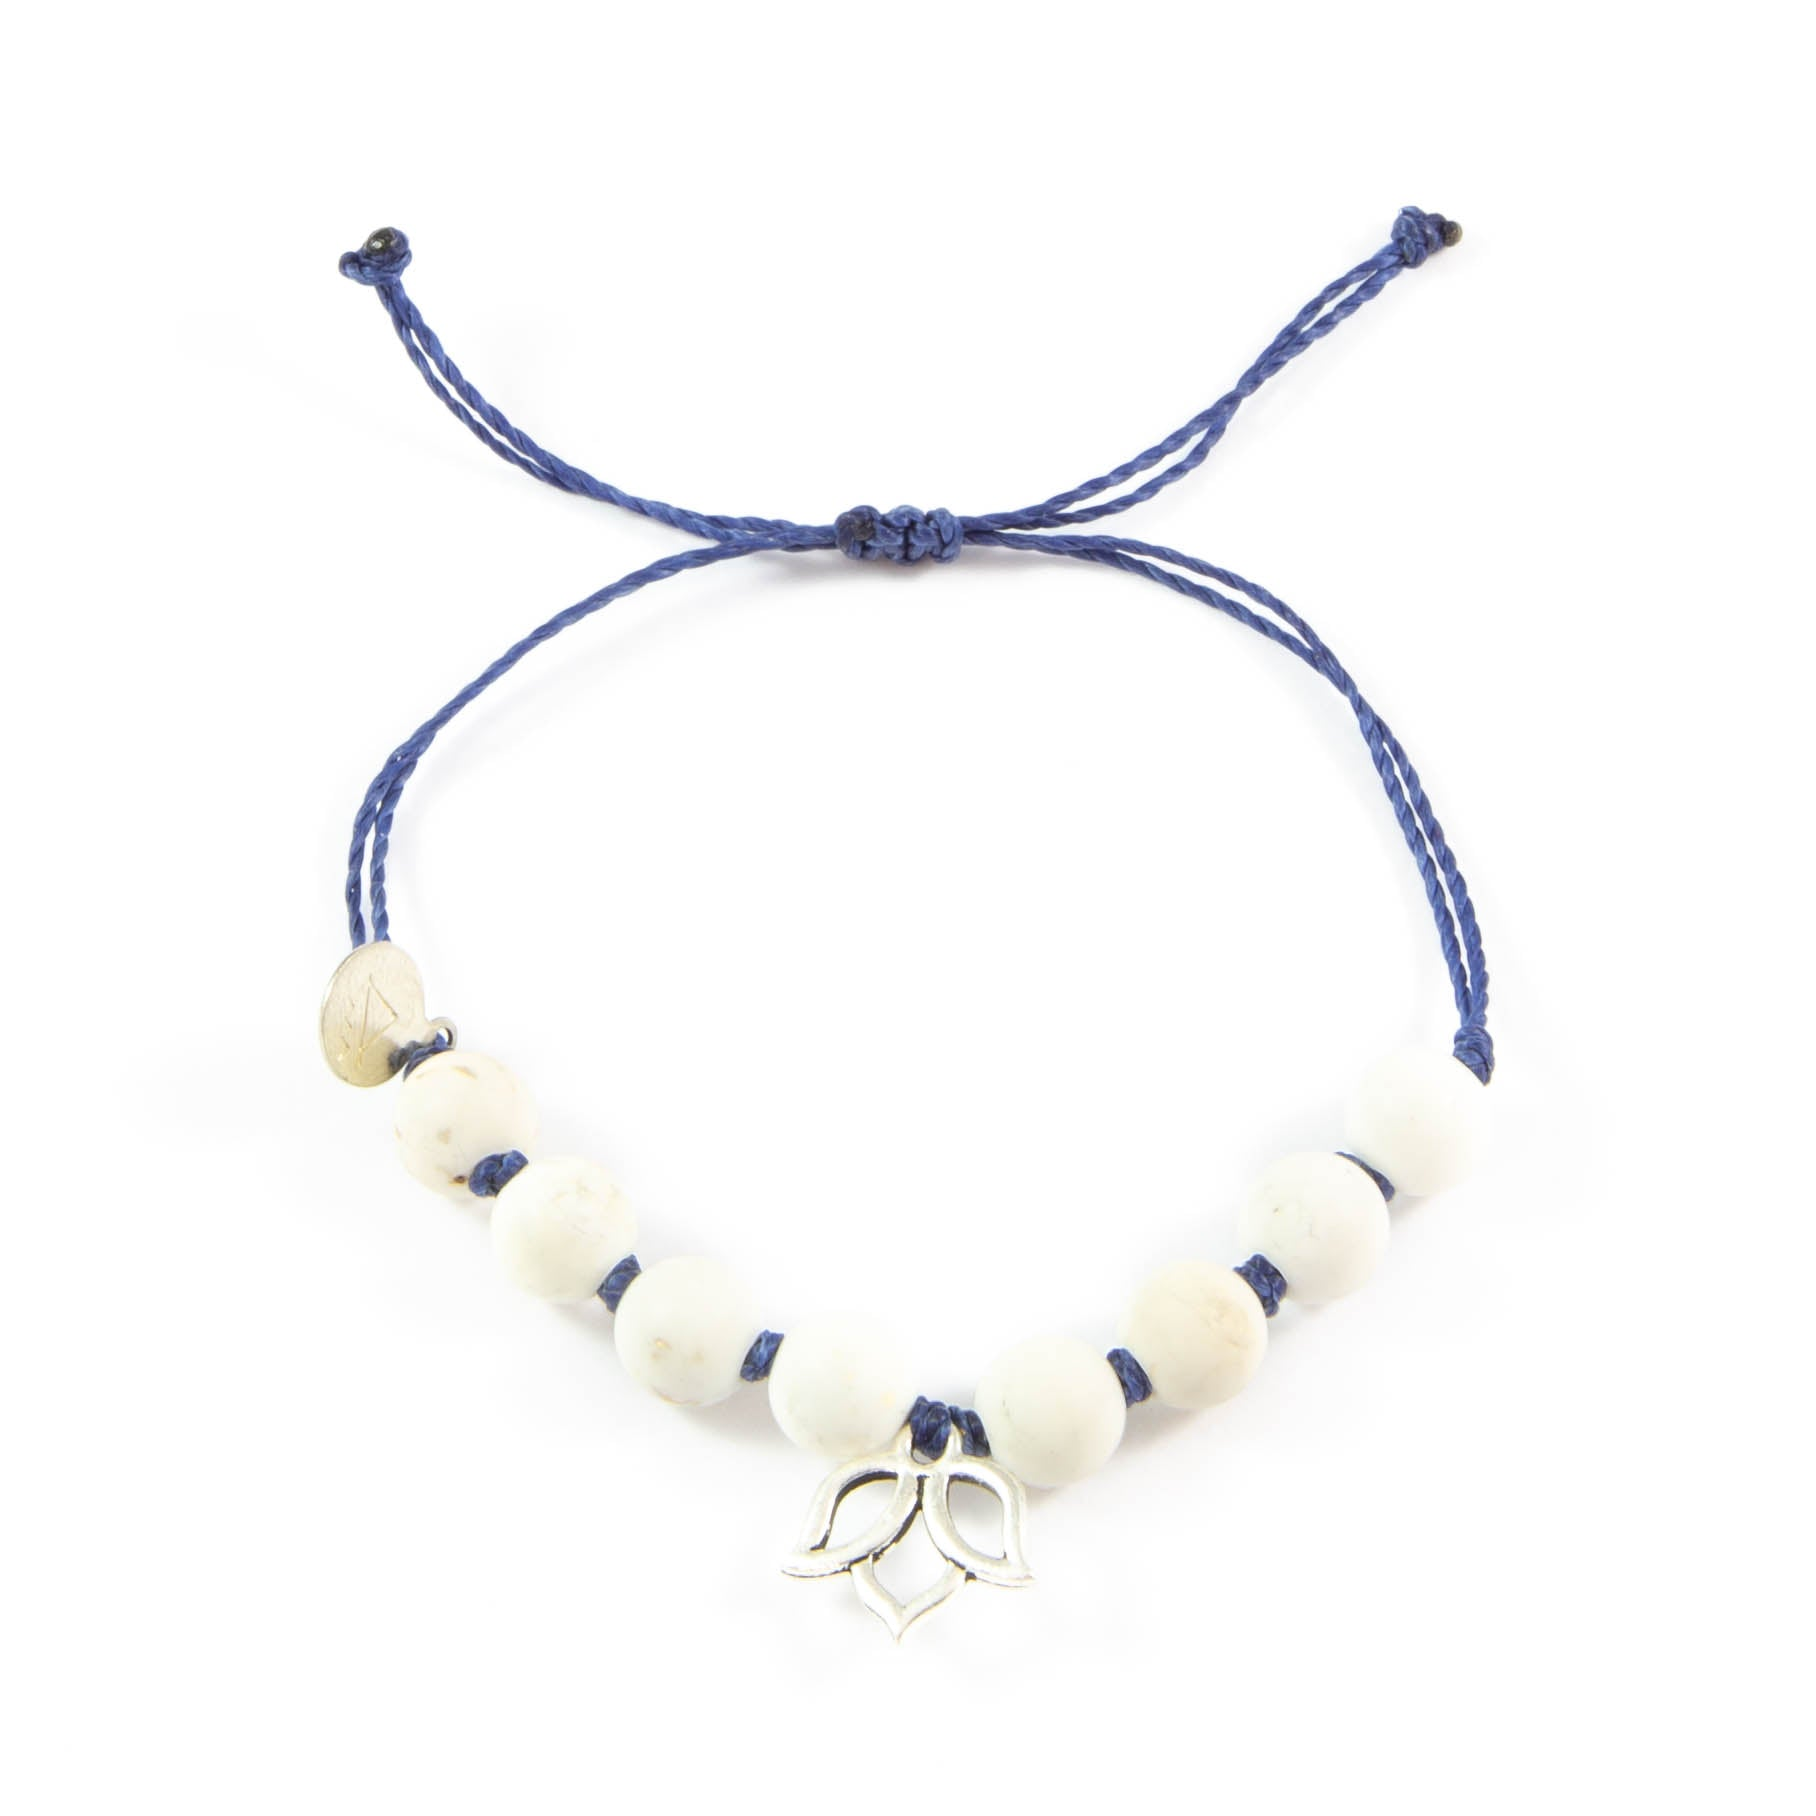 Navy & White Turquoise Lotus Flower Bracelet in Silver